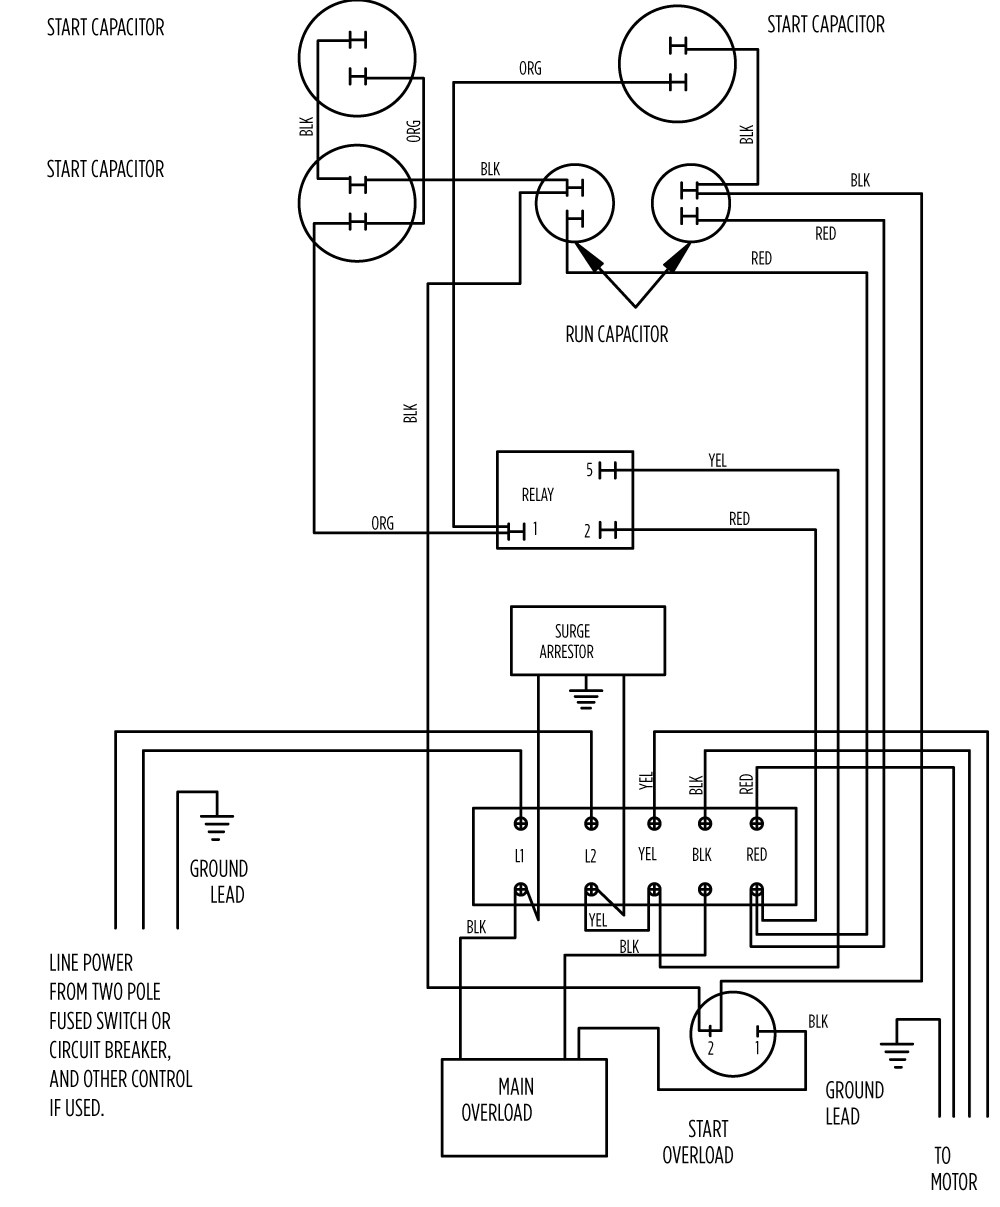 10 hp standard 282 202 9210 or 282 202 9230_aim gallery?format=jpg&quality=80 aim manual page 57 single phase motors and controls motor electrical control wiring diagrams at crackthecode.co